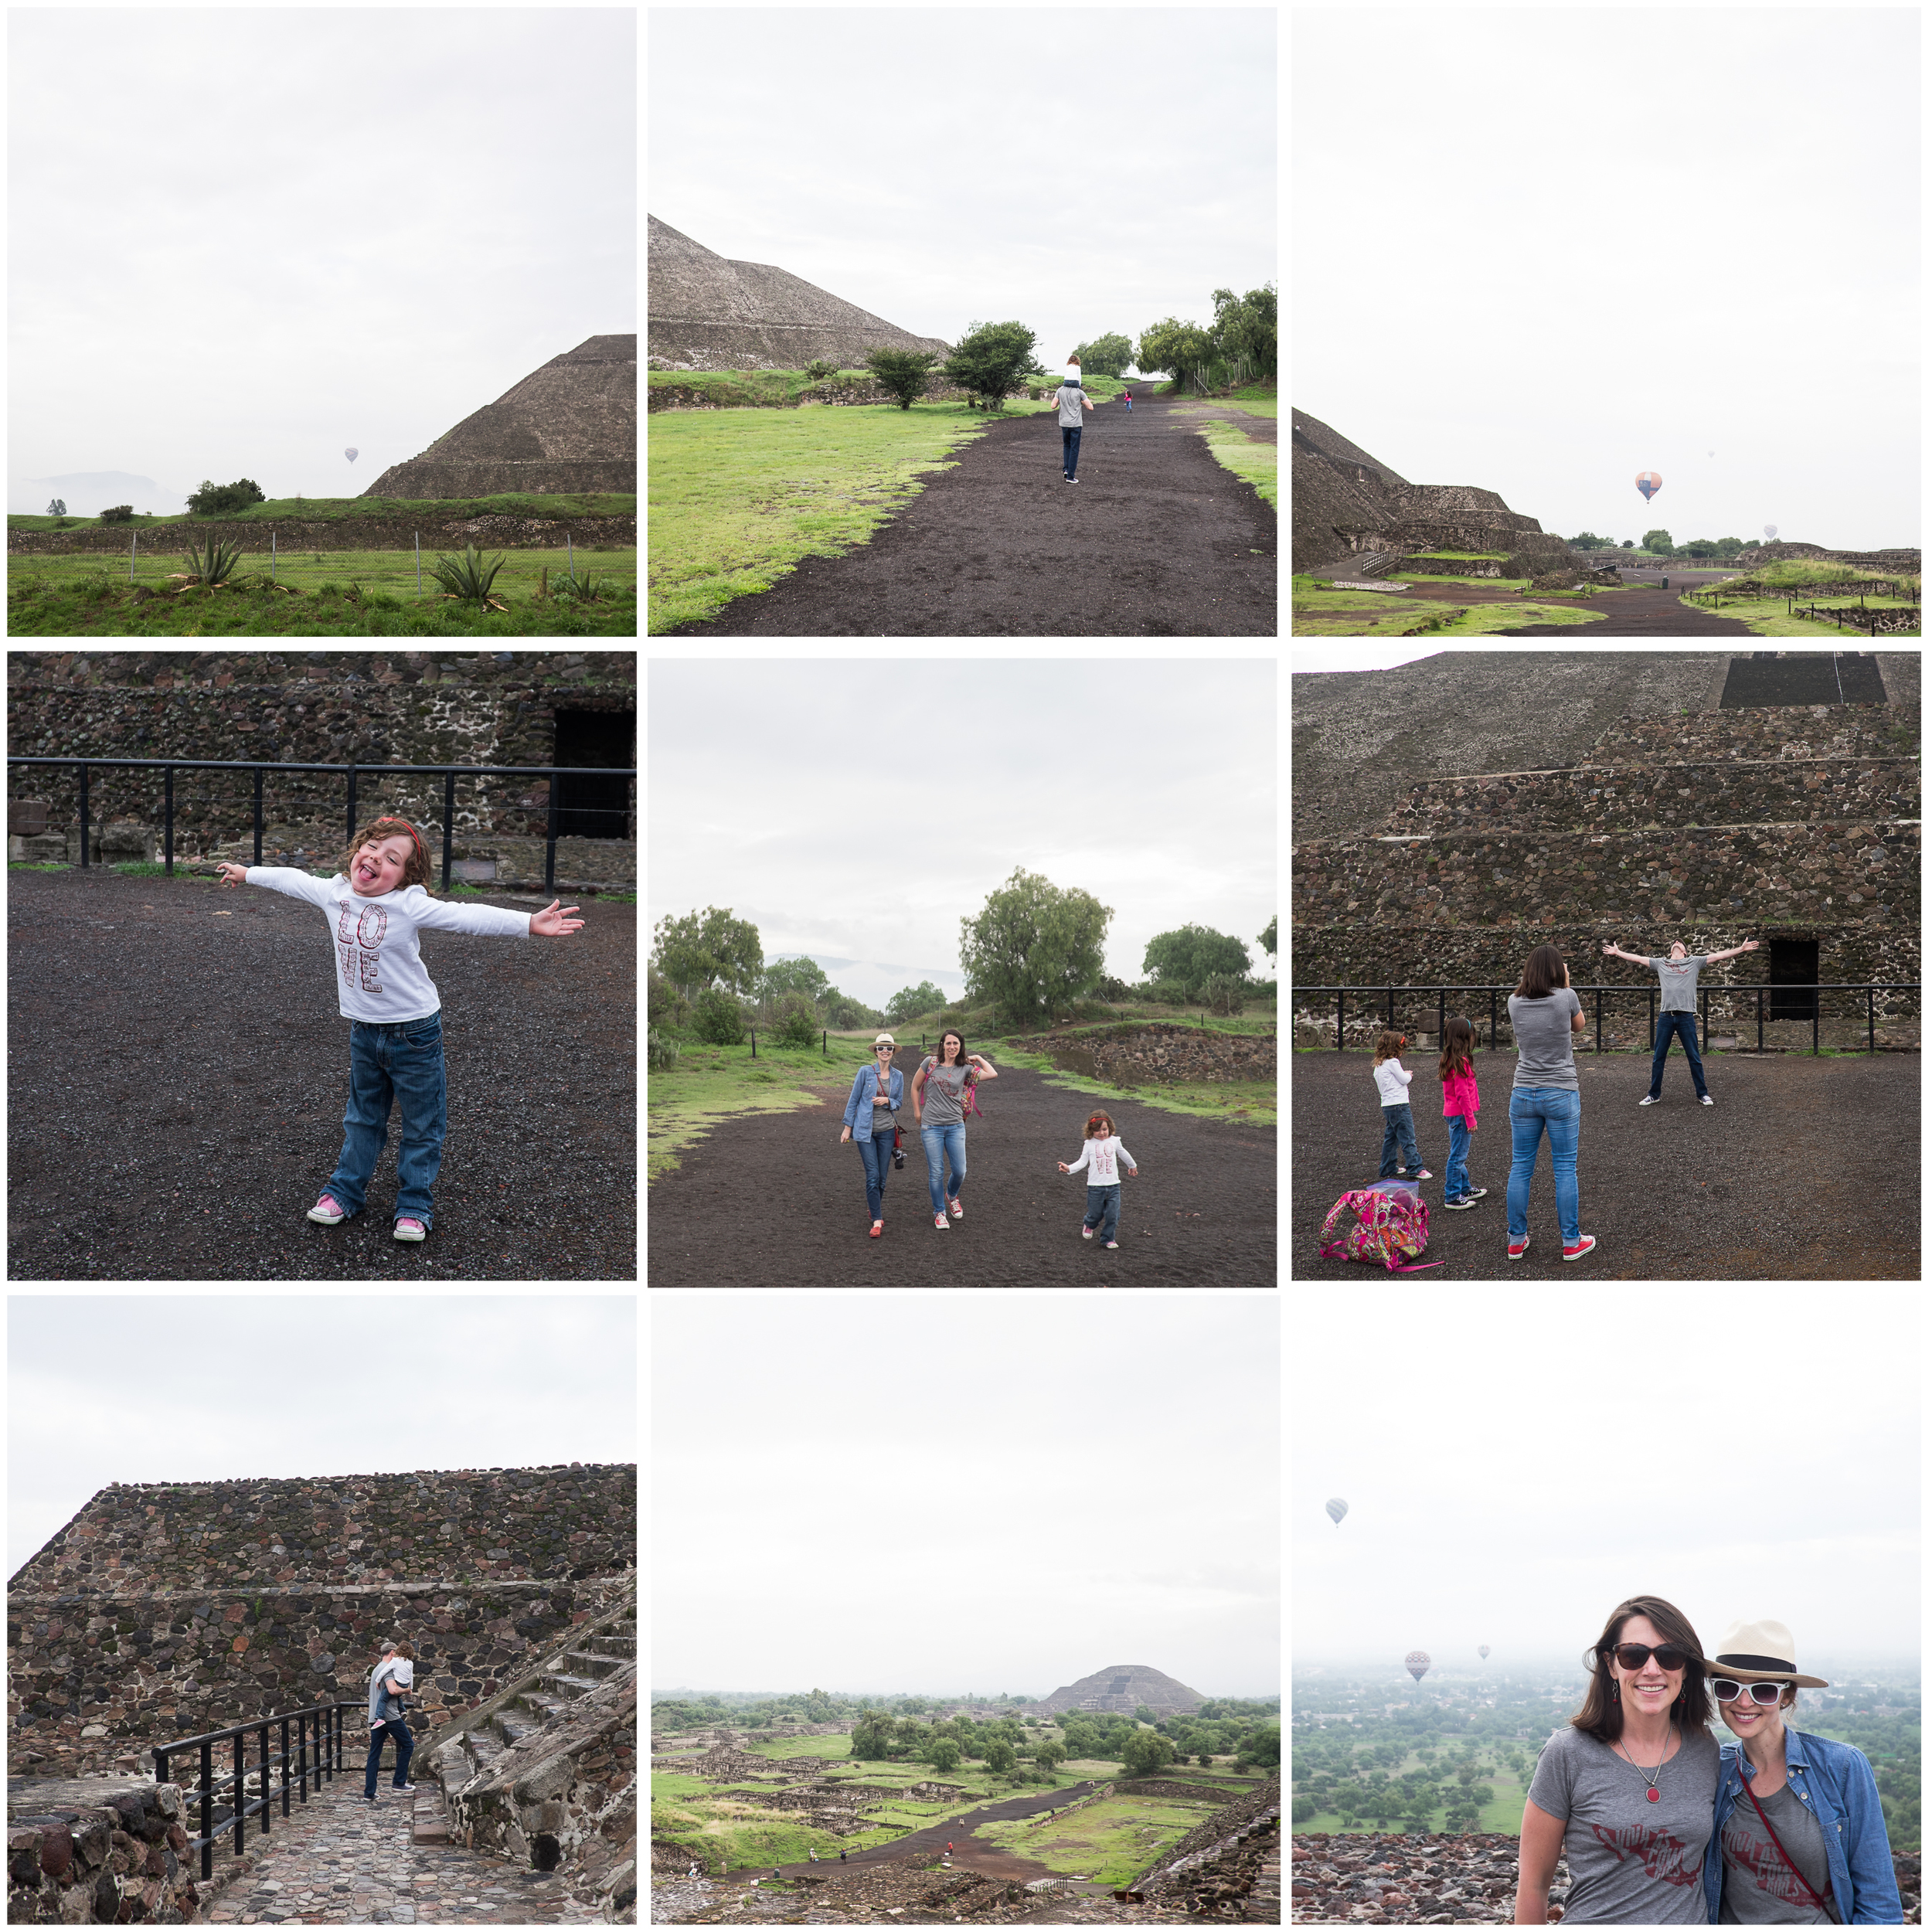 (Early!) Saturday morning we headed to Teotihuacan to visit and climb first the Pyramid of the Sun, and then the Pyramid of the Moon.  The Aztecs began construction on these pyramids and nearby temples in 100 C.E. Beating the crowds, we had the top of the first pyramid all to ourselves, surrounded by hot air balloons that launch early in the day.  It was absolutely a bucket list kind of morning.